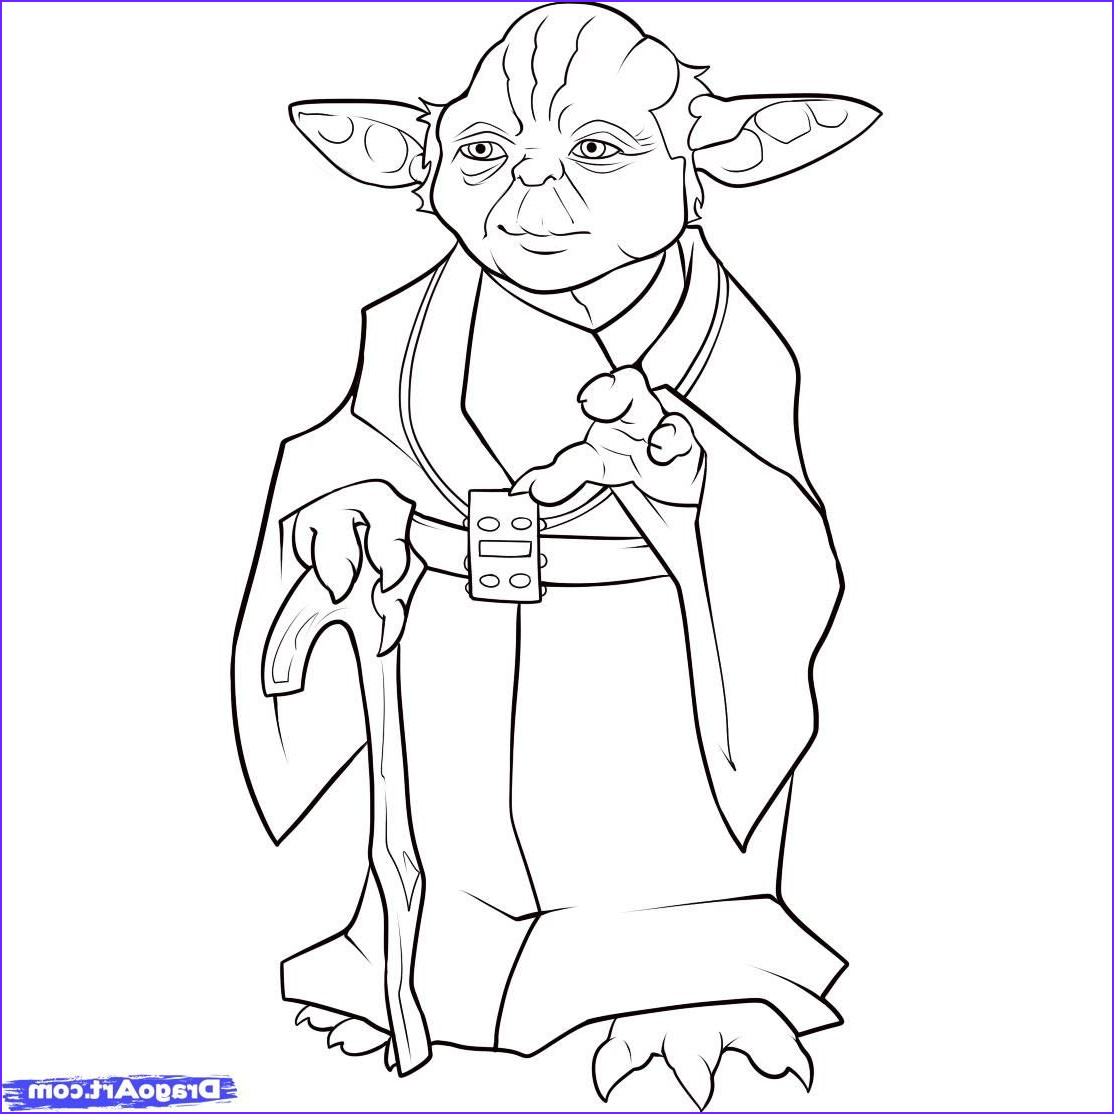 Star Wars Characters Coloring Pages Beautiful Photos Yoda Coloring Page Party Ideas Pinterest